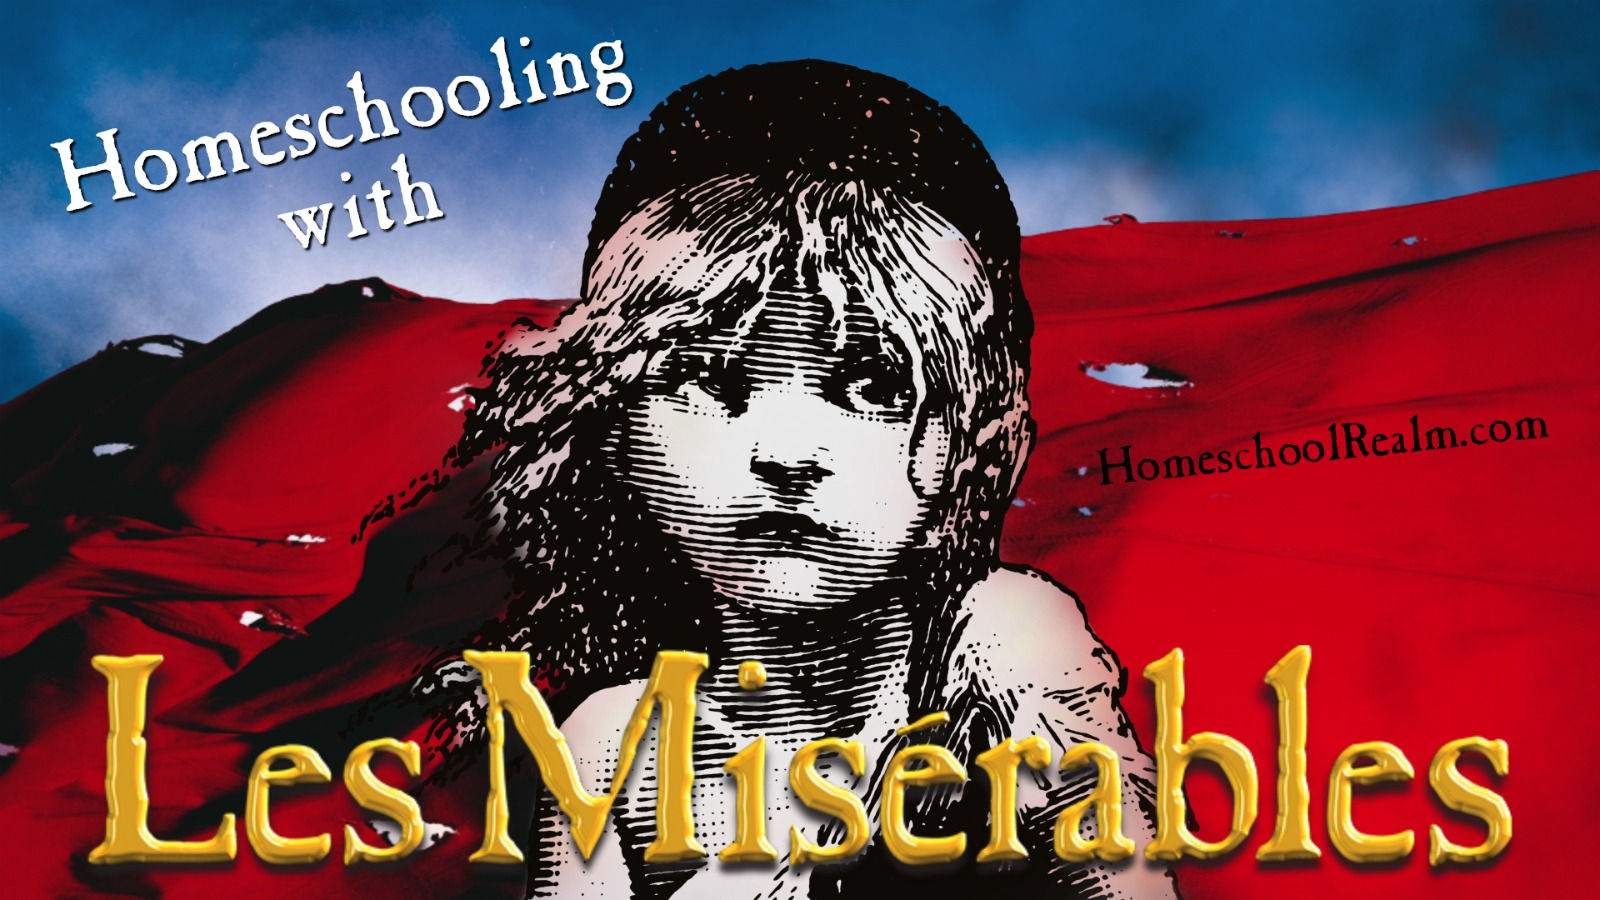 Homeschooling with Les Miz